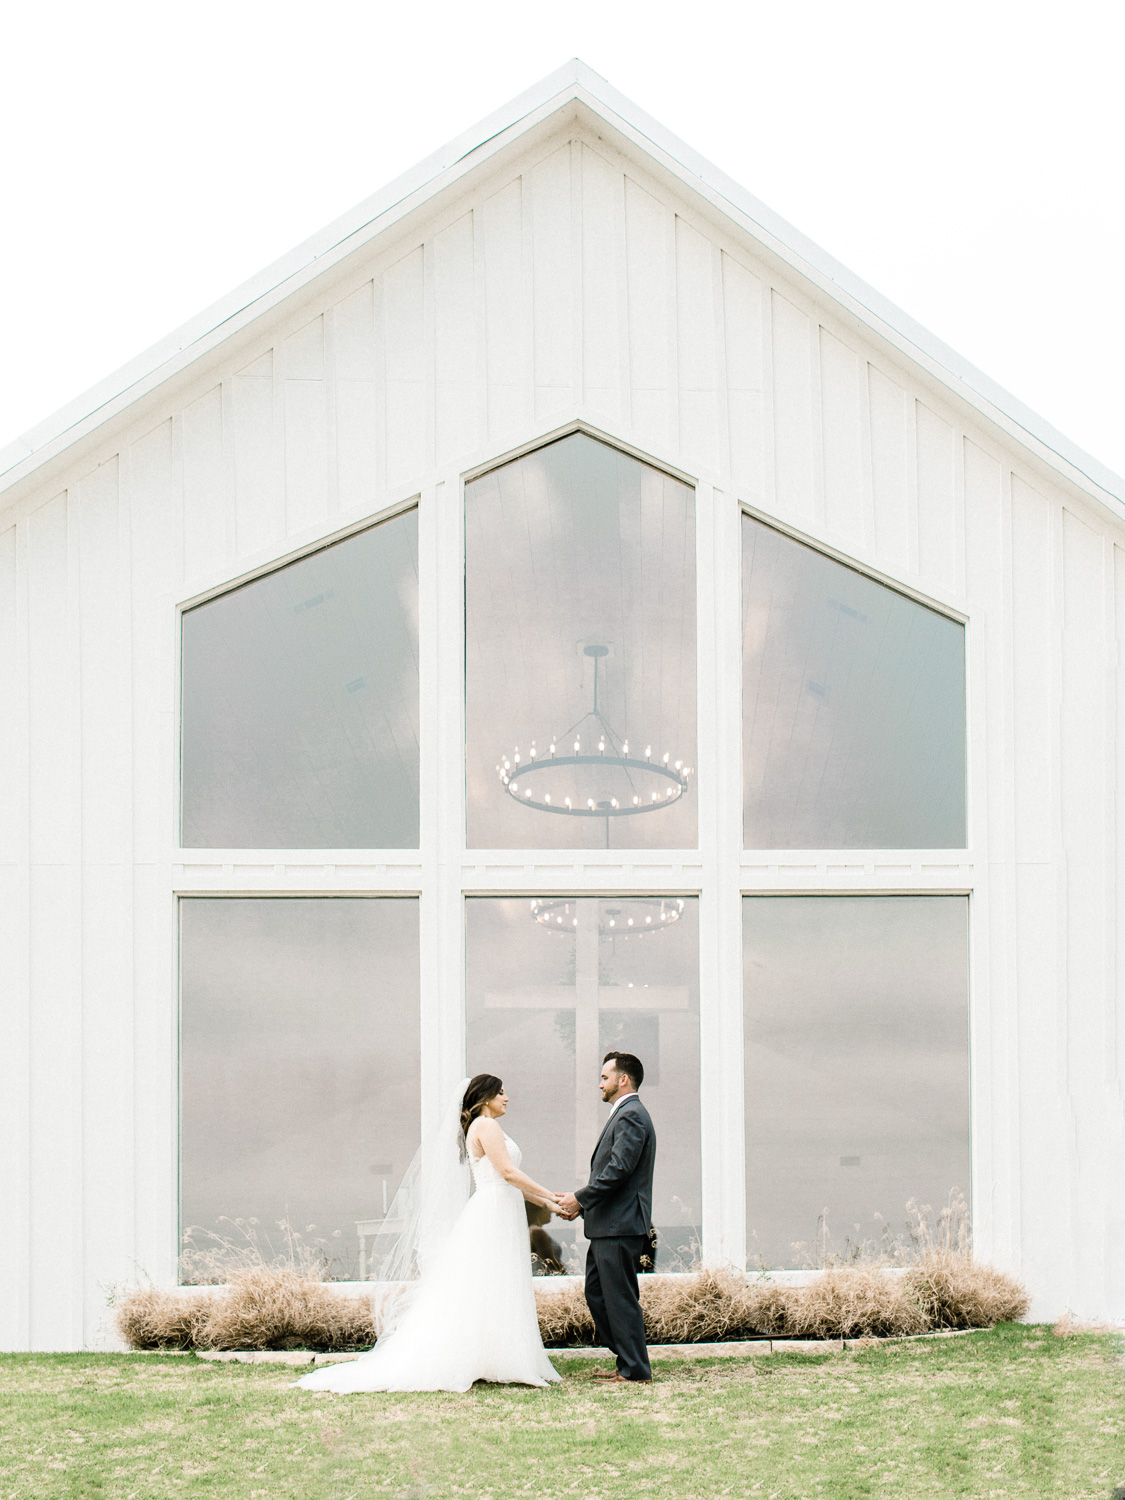 Farmhousewedding_35.jpg